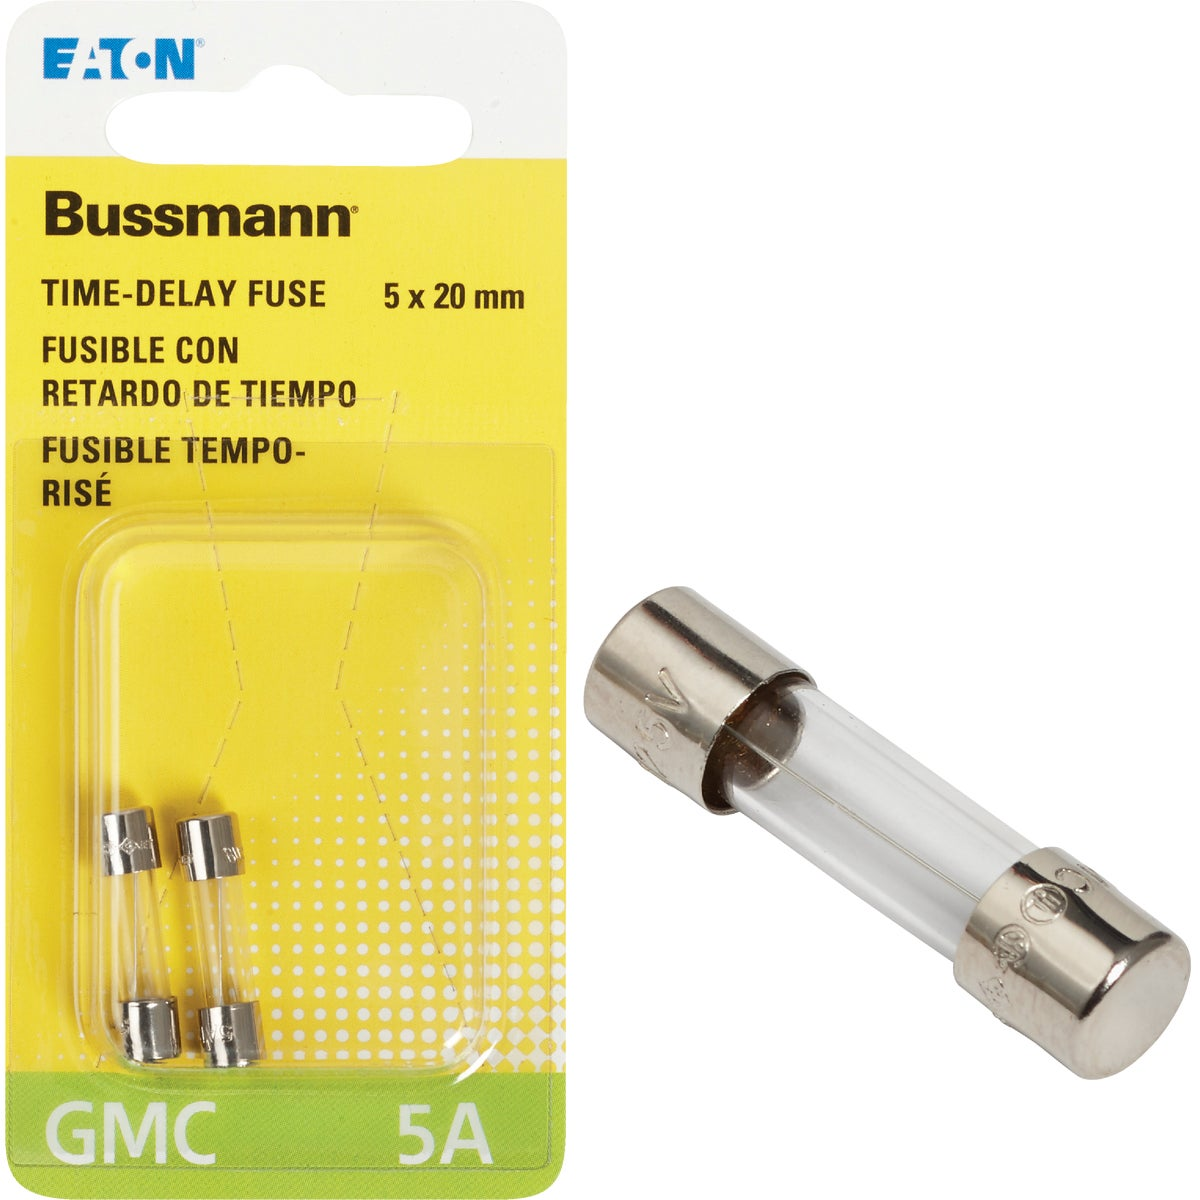 5A MED TIME DELAY FUSE